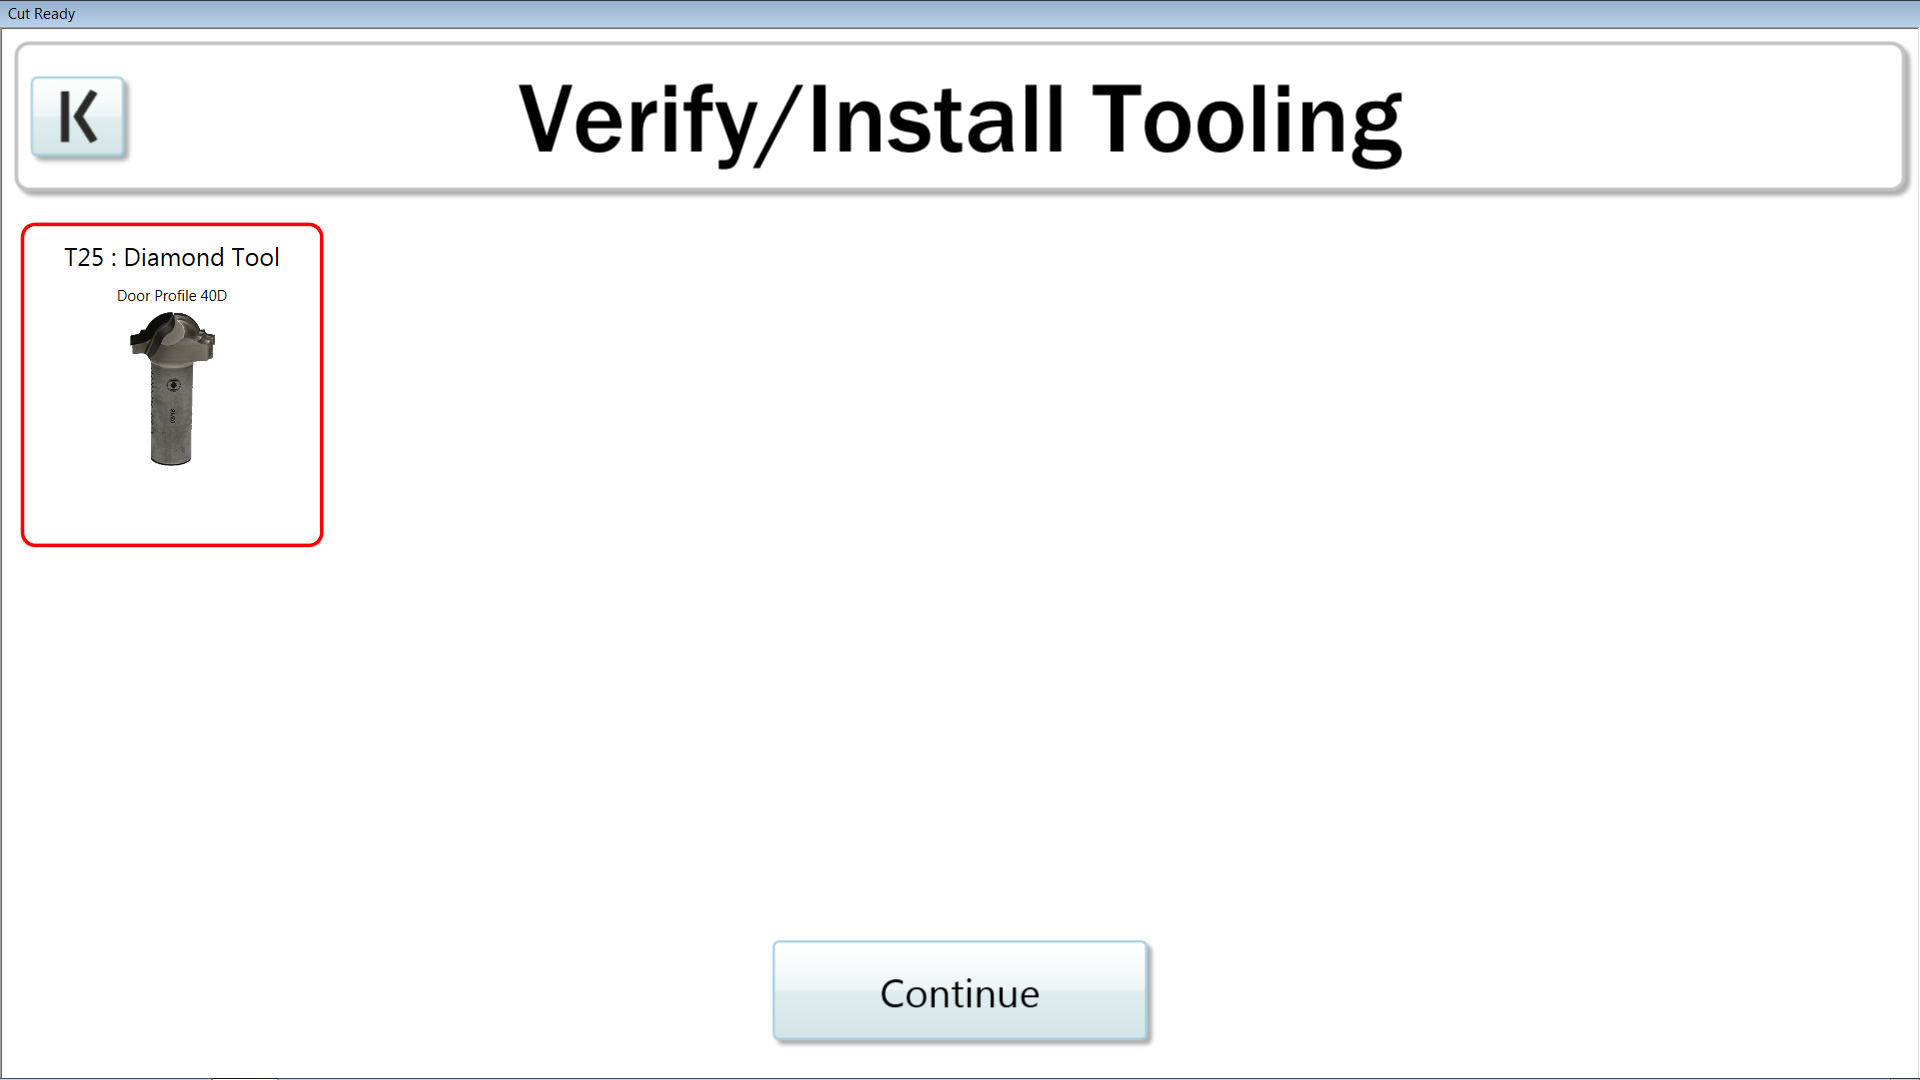 The verify tooling interface has been simplified and now only displays the tools in use